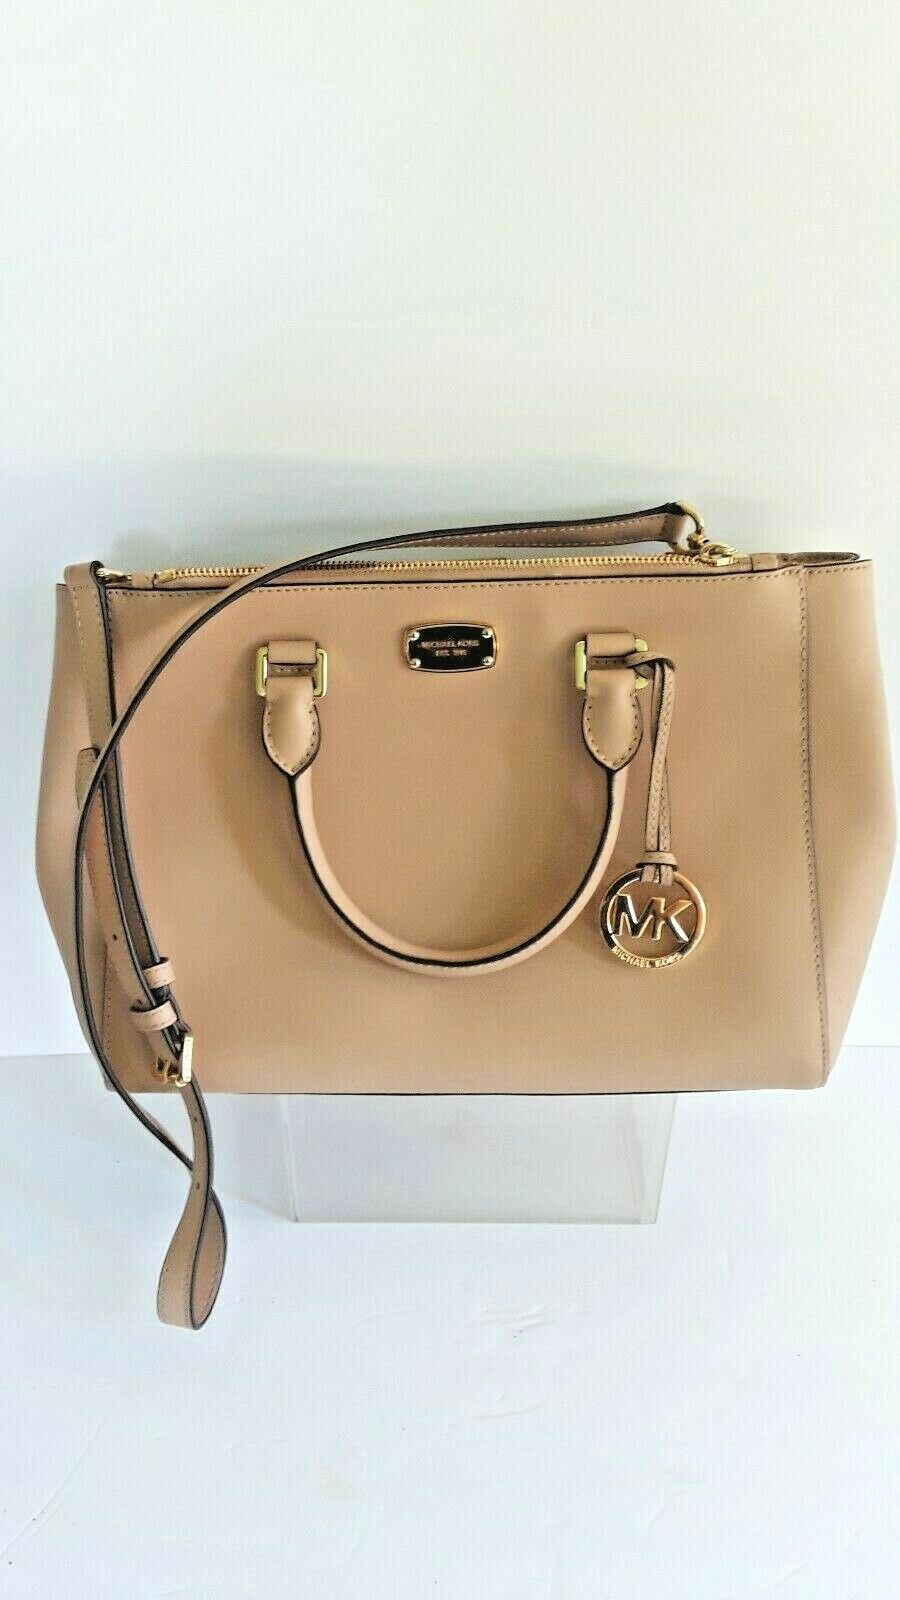 Michael Kors Leather Satchel Crossbody Messenger Tote Bag Ha